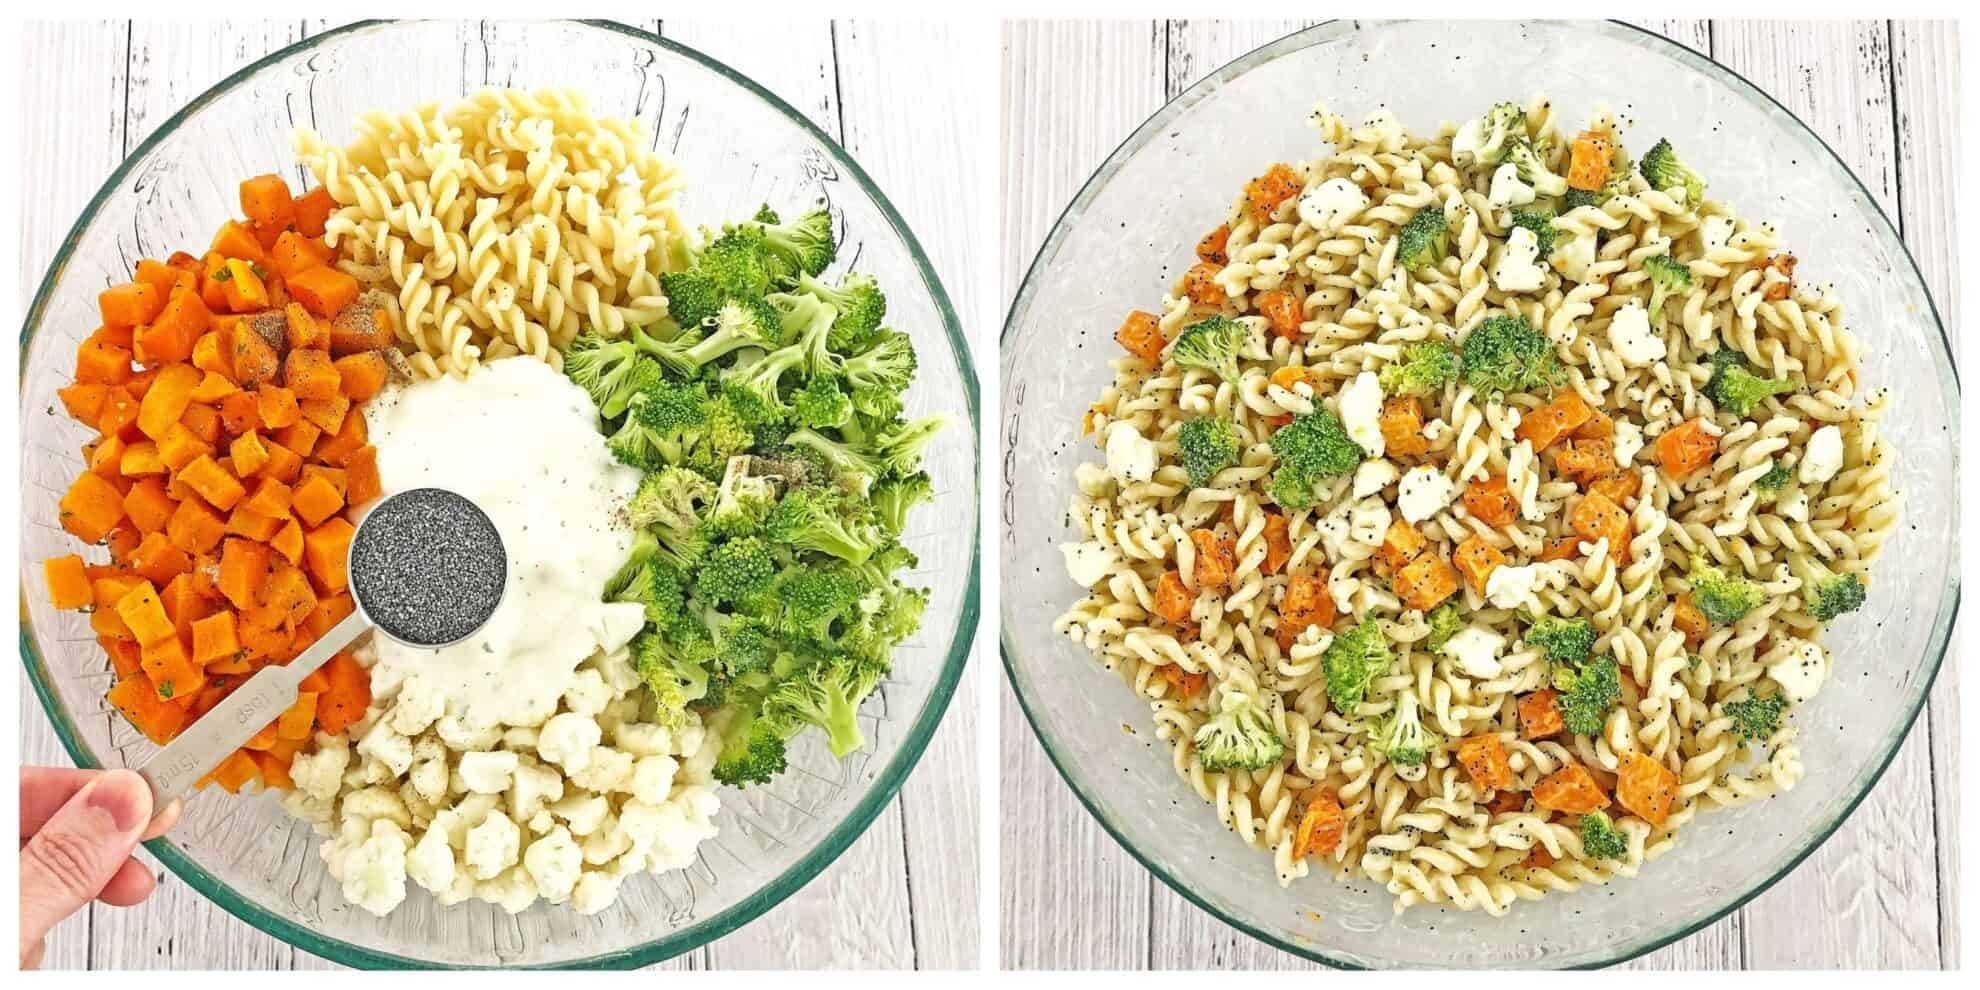 This make ahead, and crowd-pleasing of the Butternut Squash Pasta Salad side dis is another gem in a Thanksgiving spread. Or any gathering, really. Organic pasta tossed with fresh broccoli, cauliflower, roasted butternut squash and dressed with homemade ranch makes this salad taste absolutely incredible! #butternutsquashpastasalad #winterpastasalad #thanksgivingpastasalad #coldfallpastasalad